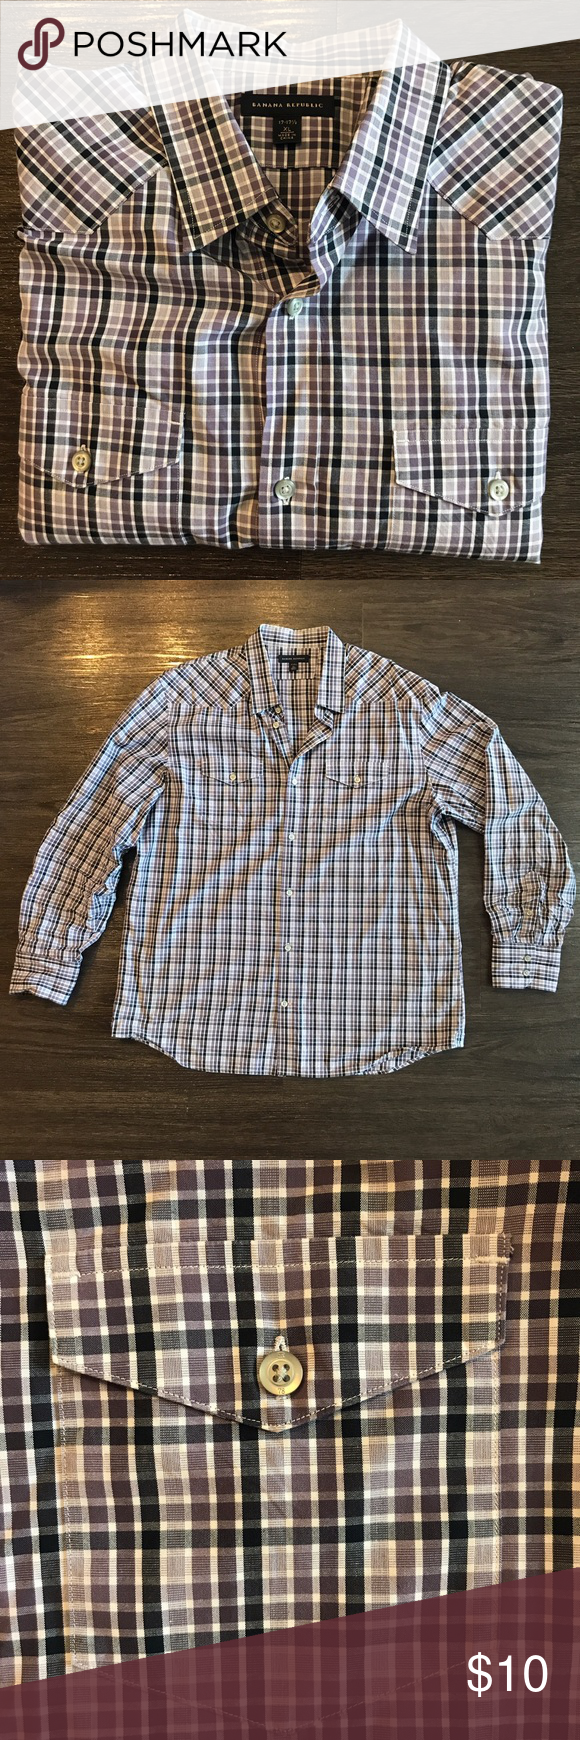 Banana Republic double pocket button down Various purple toned cross stripped button down. Some yellowing on collar so price has been adjusted. Banana Republic Shirts Casual Button Down Shirts